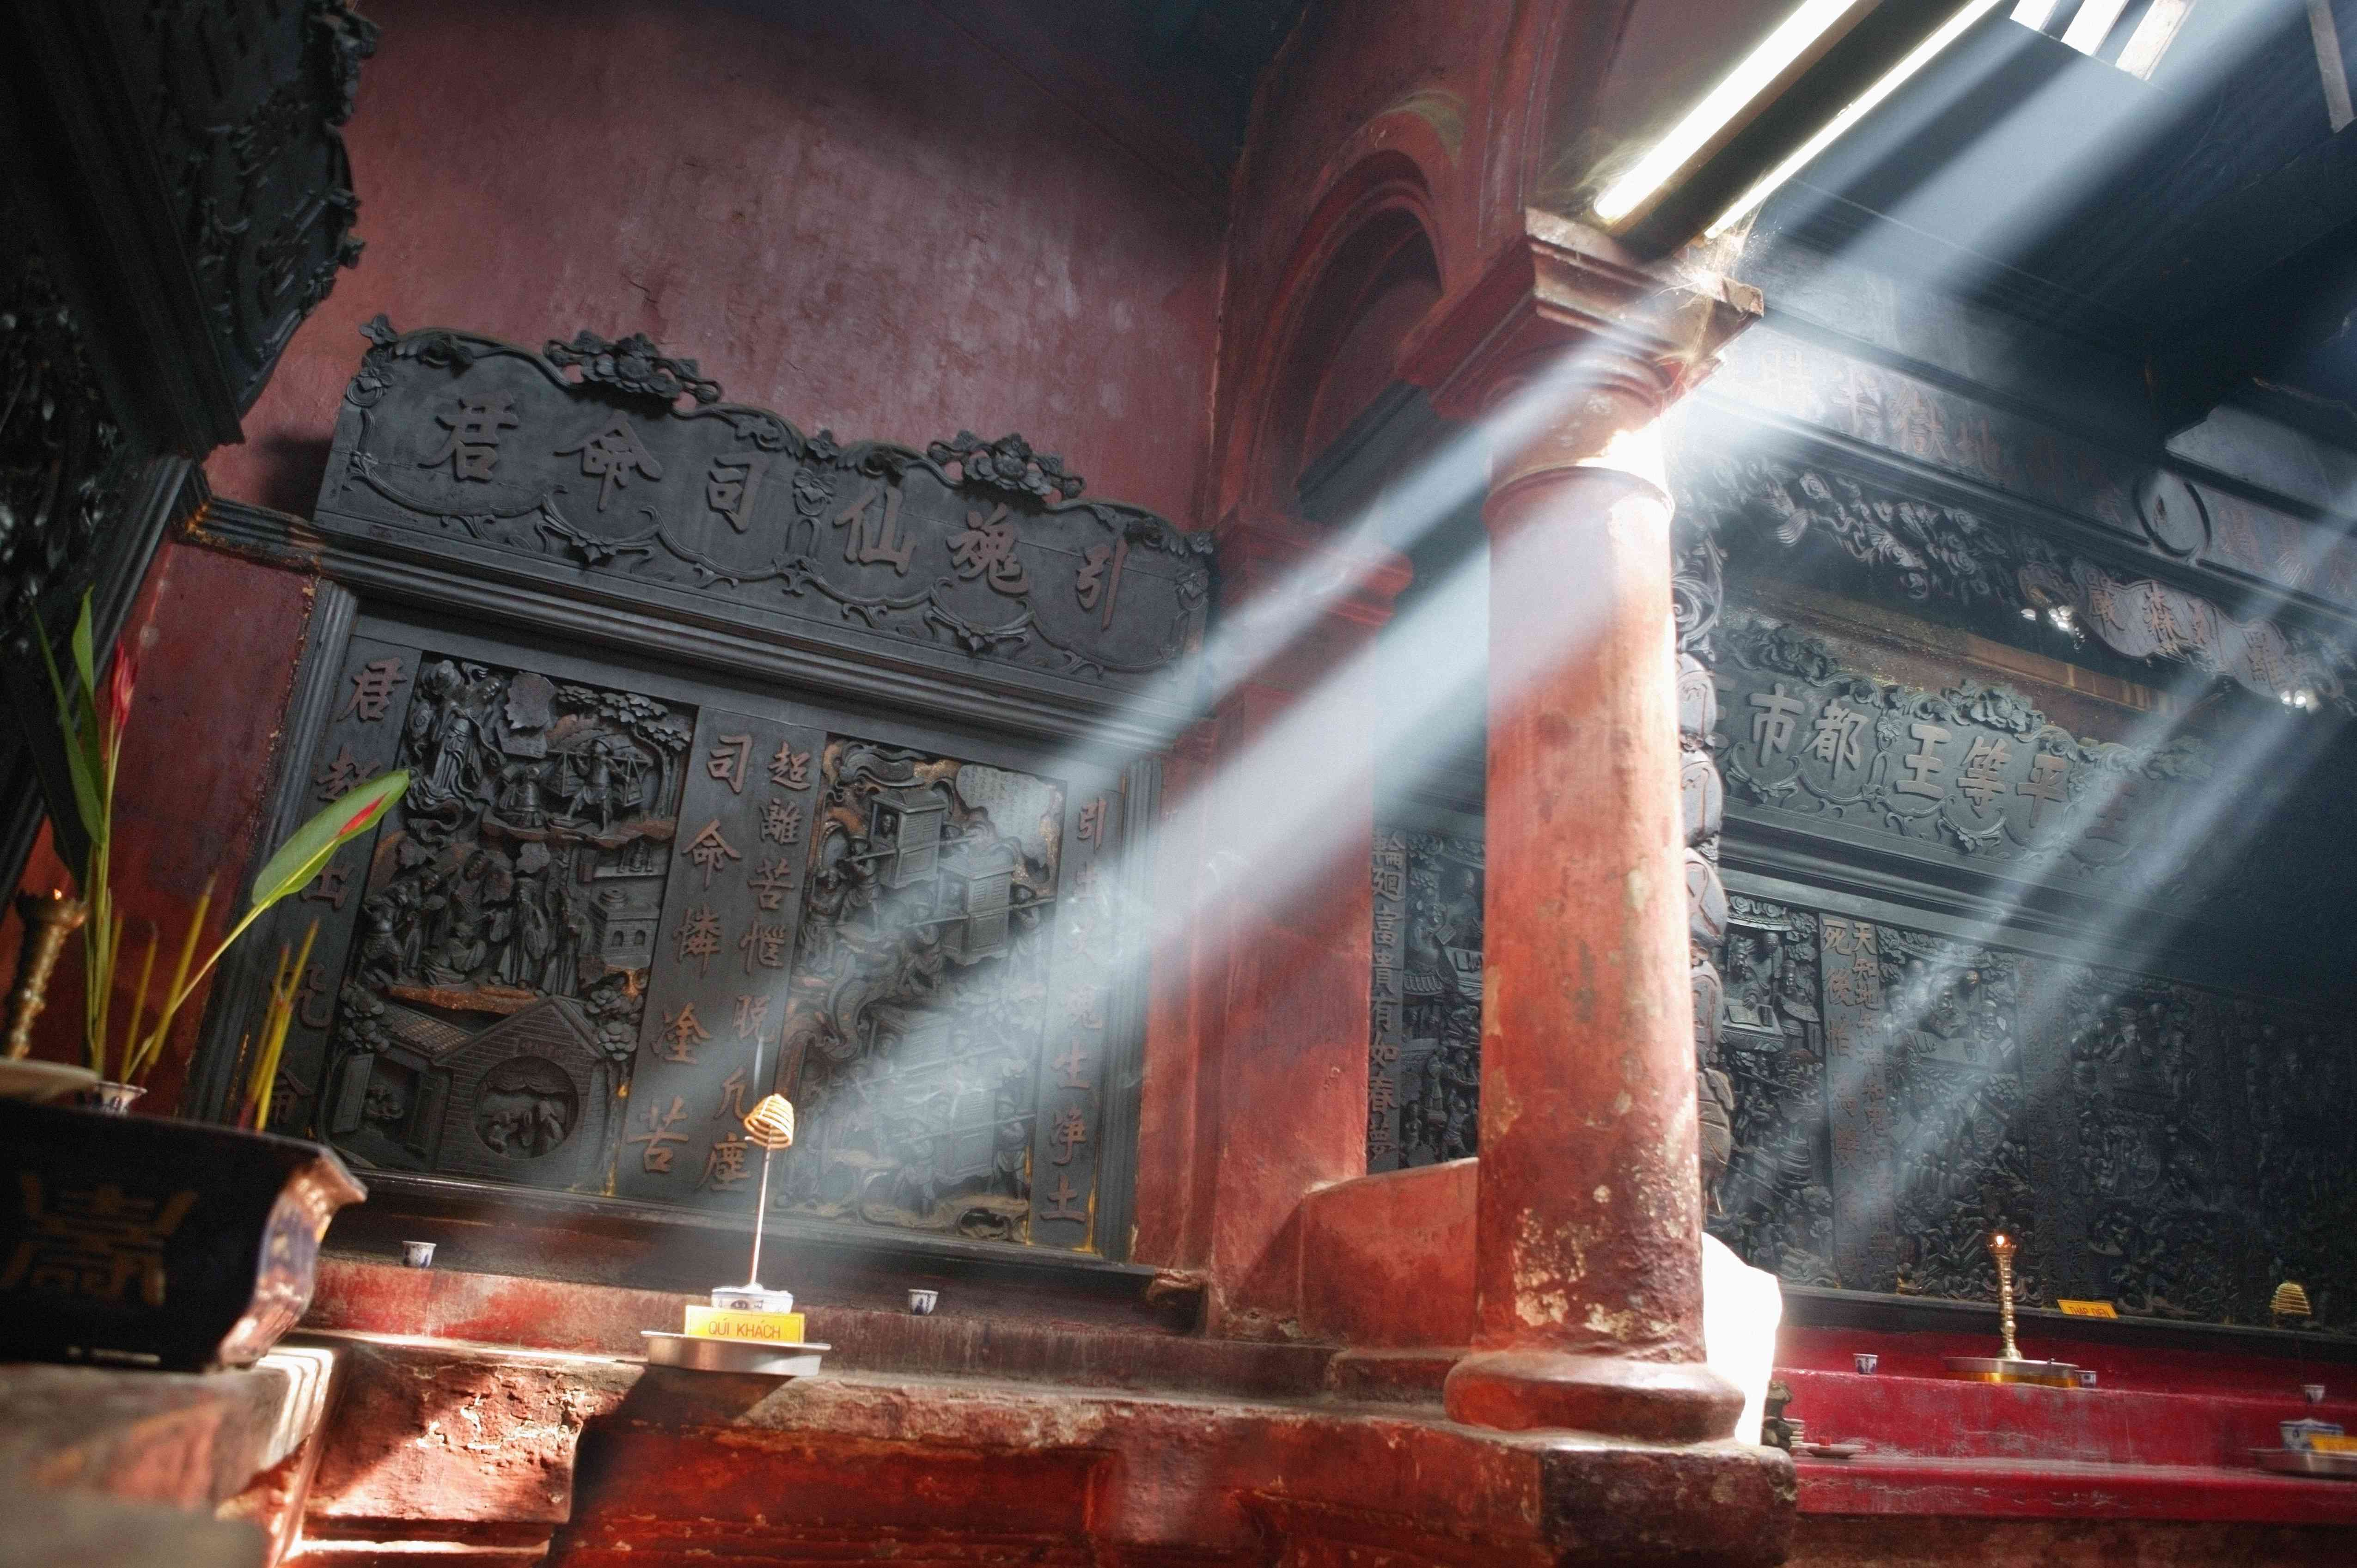 black carved wooden altar with shafts of light coming through